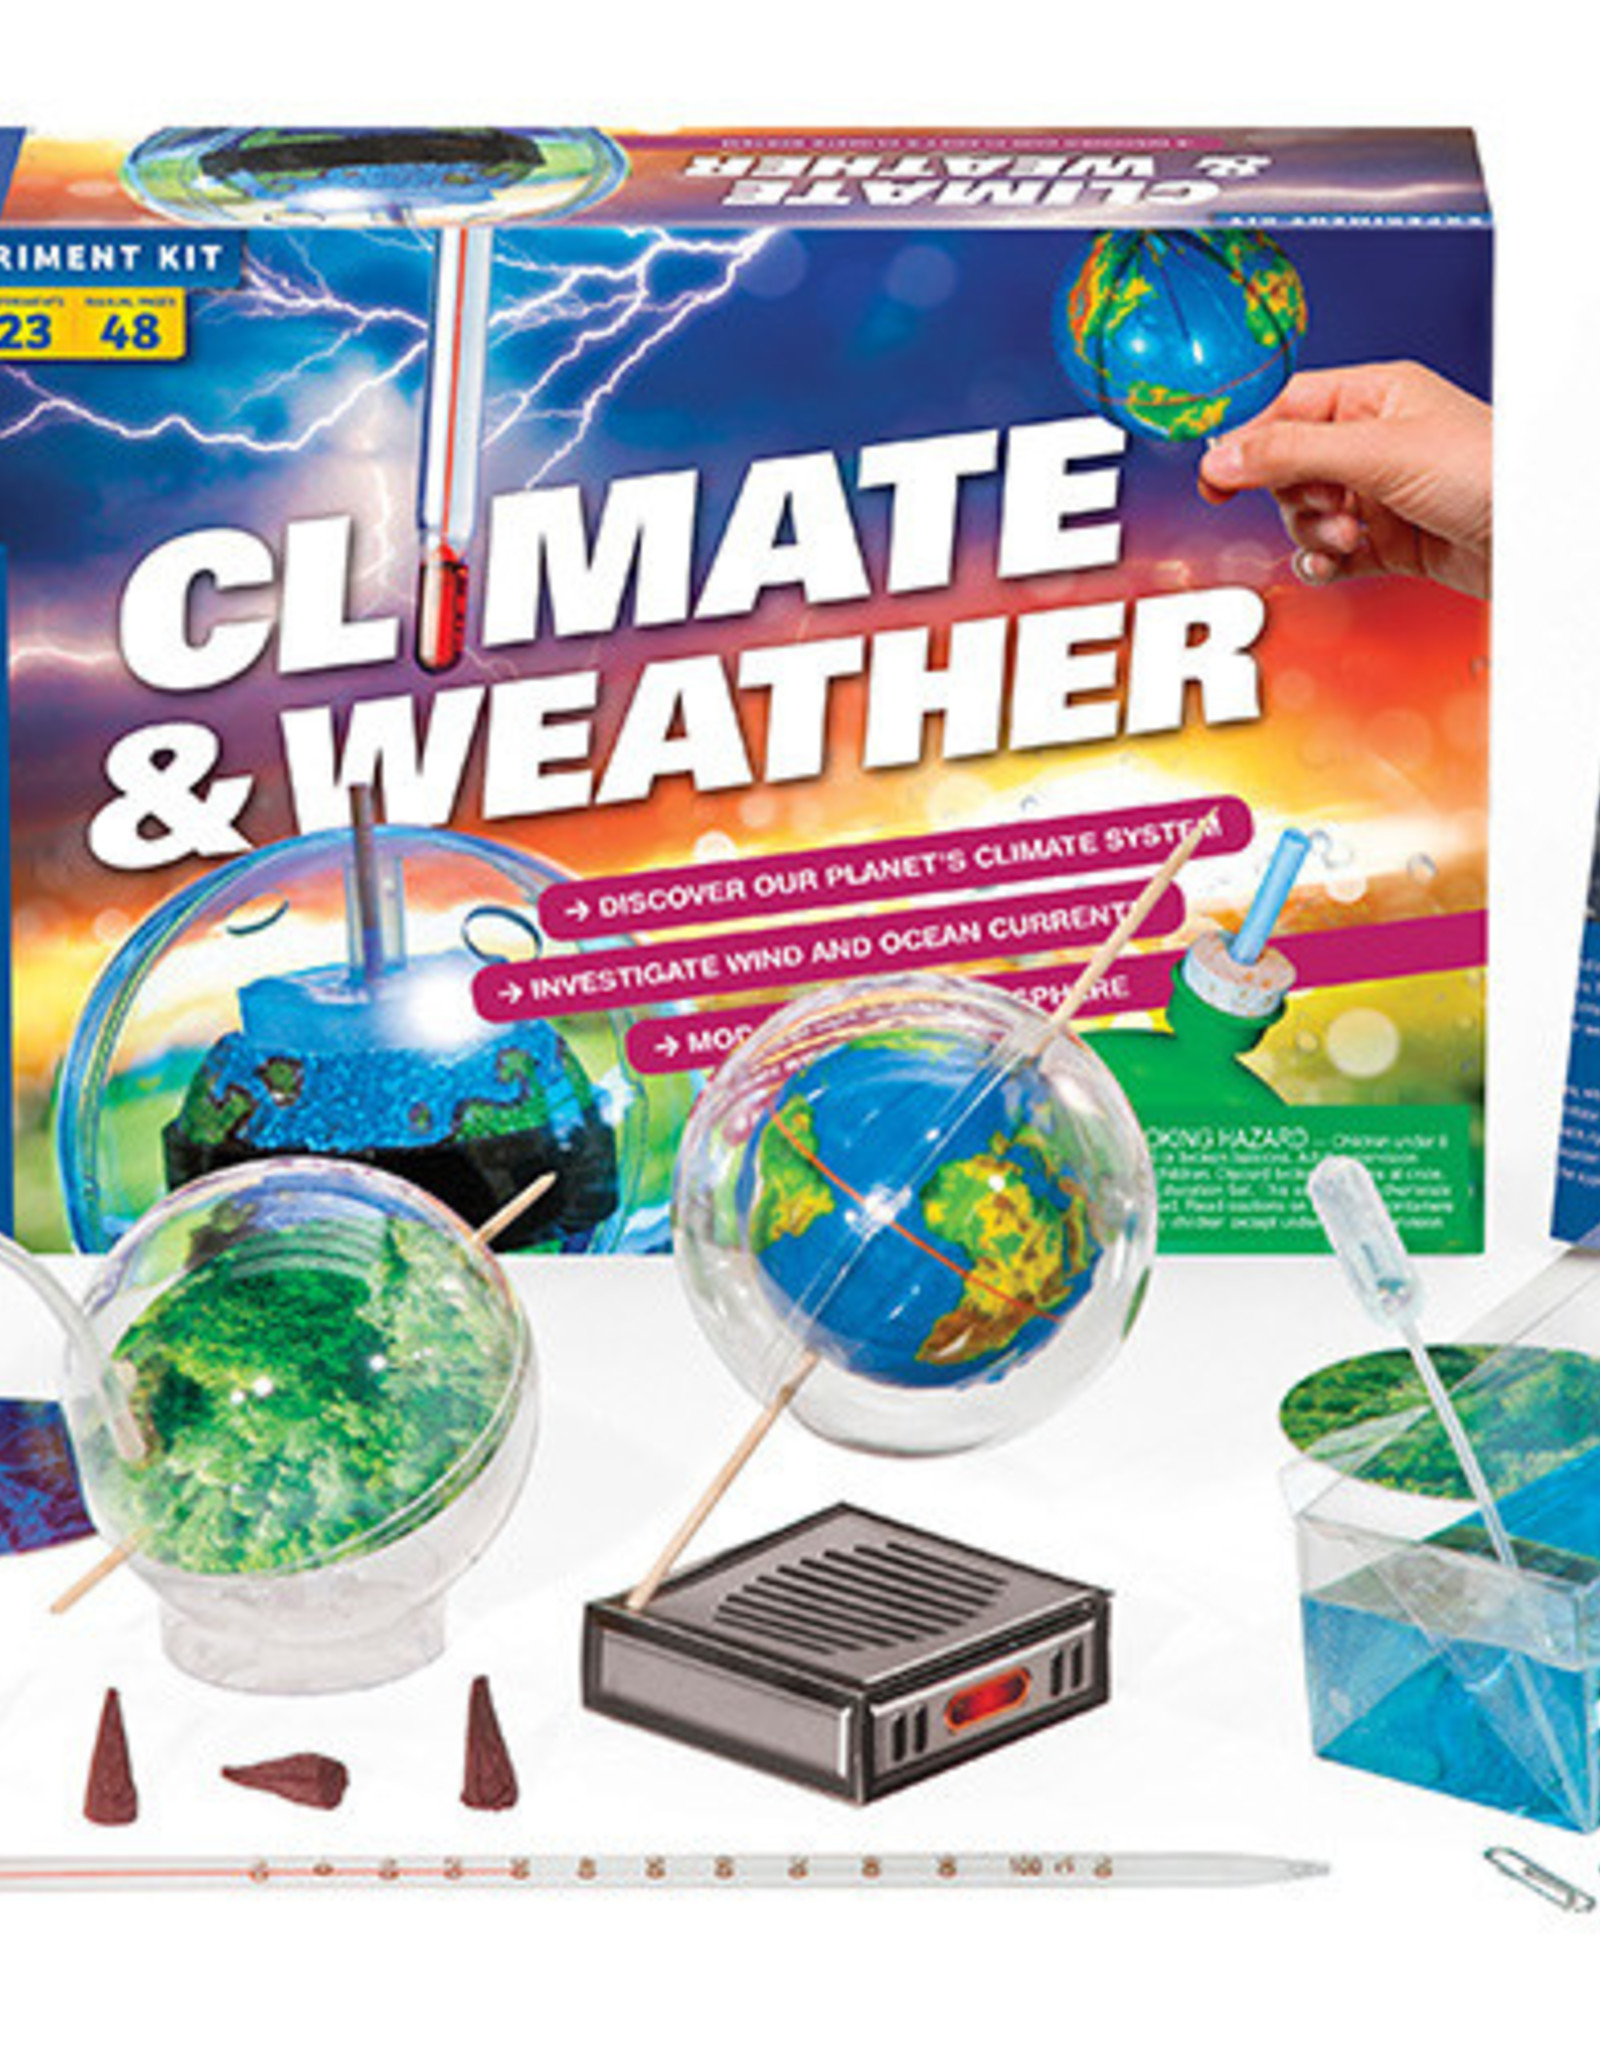 STEM EXPERIMENT KIT CLIMATE & WEATHER